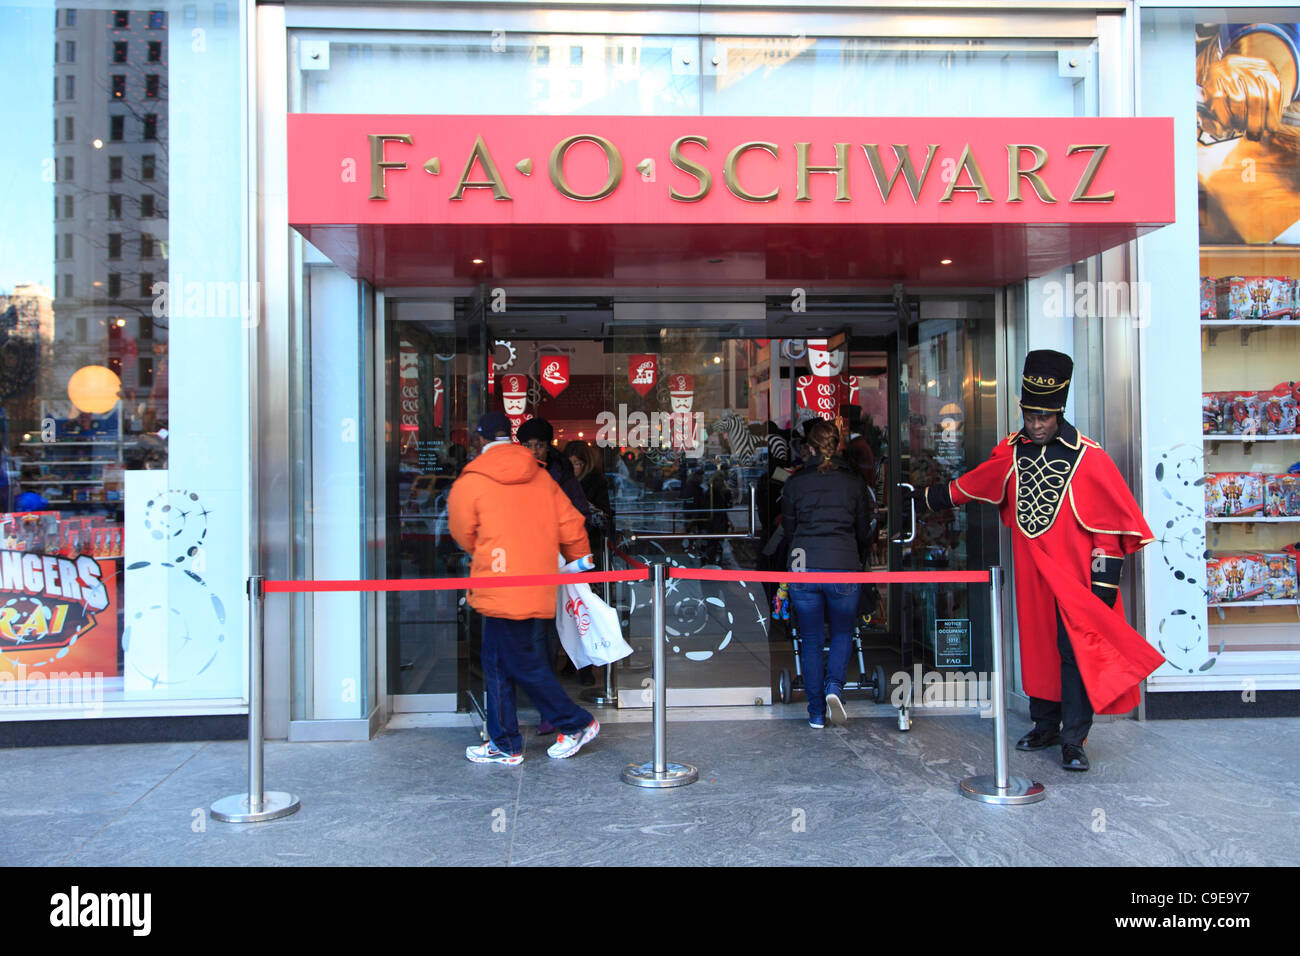 Fao schwarz new york stock photos fao schwarz new york stock fao schwarz toy store decorated for christmas holiday shopping season fifth avenue manhattan sciox Image collections